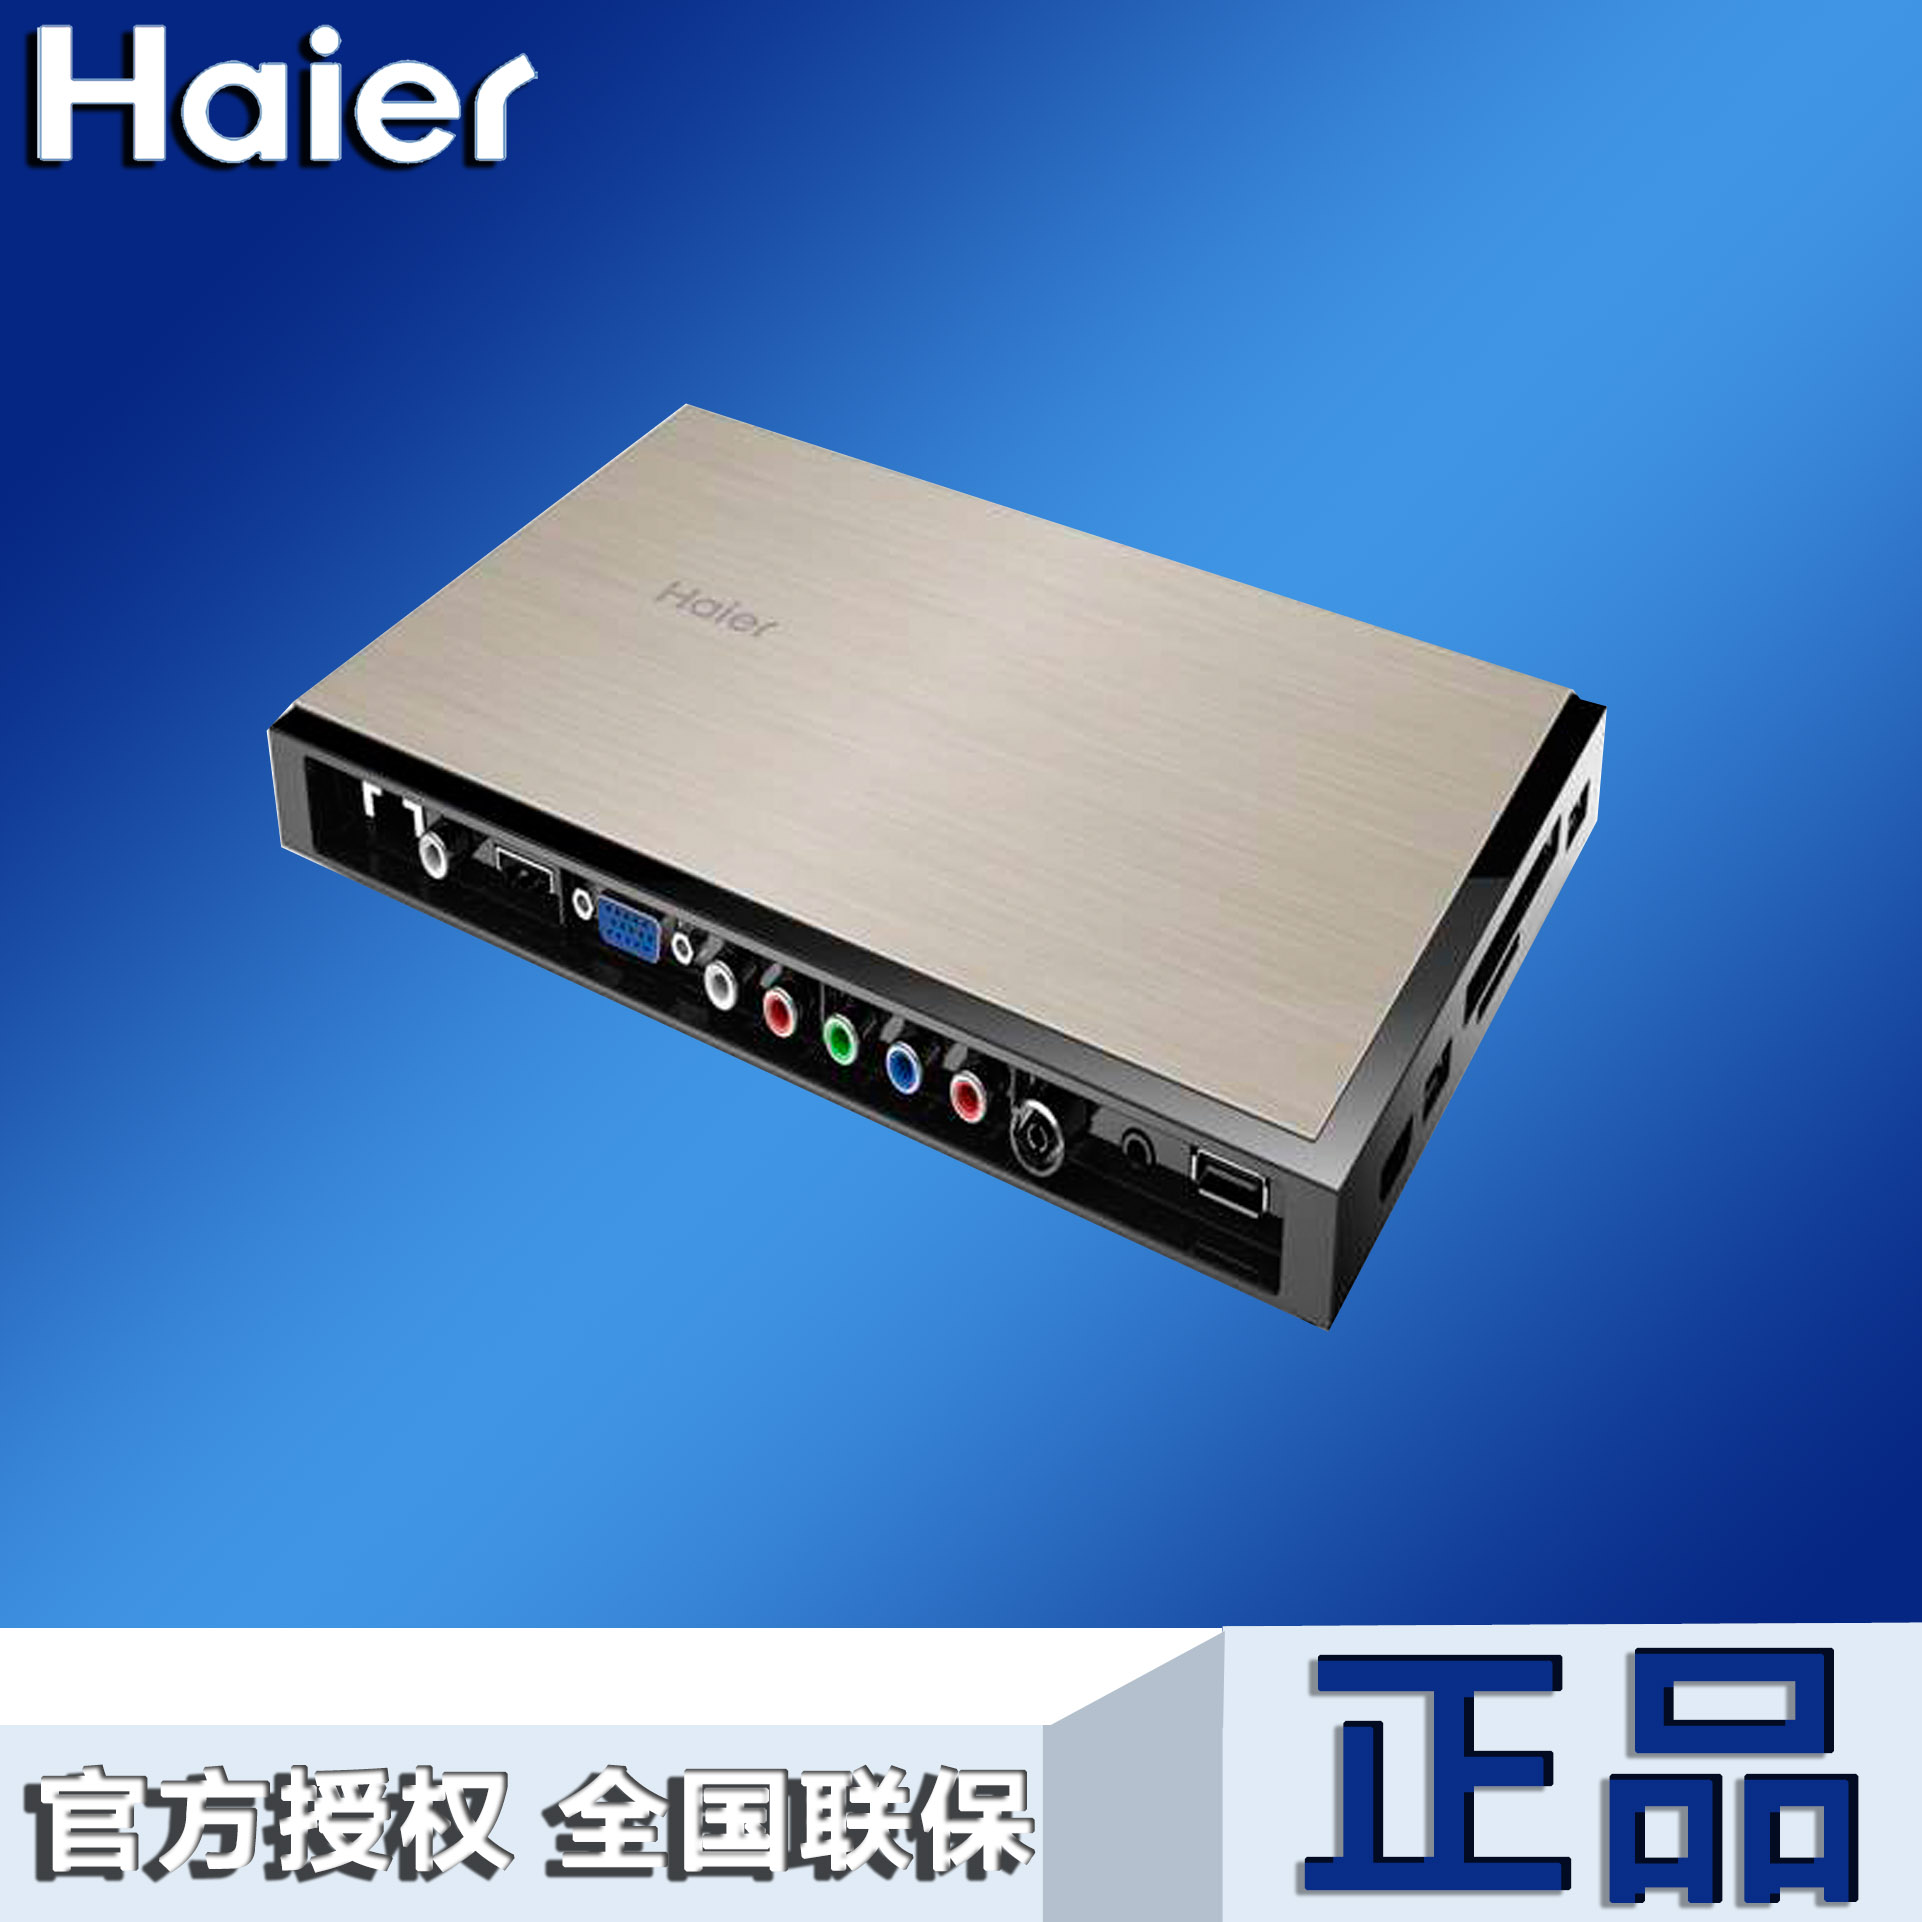 LED-телевизор Haier MC-A1 LD49U9000 LE48A7000 led телевизор haier le48u5000